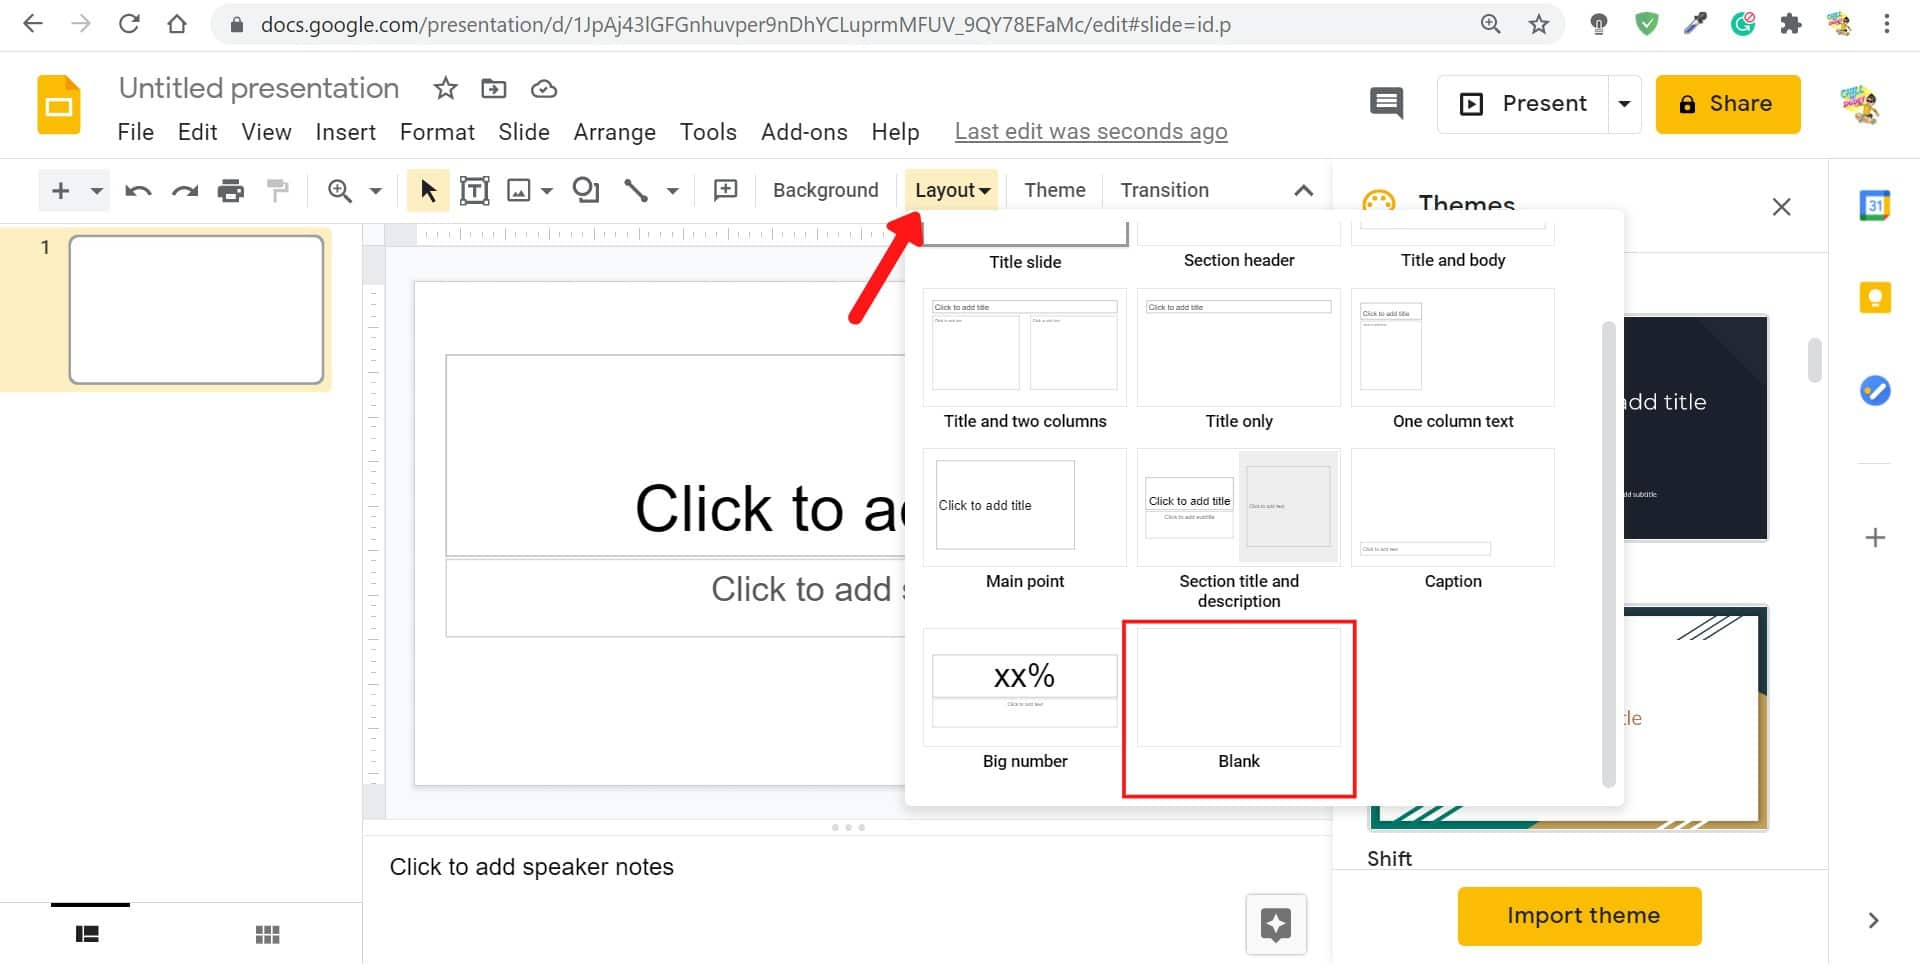 how to create a collage of images on google slides